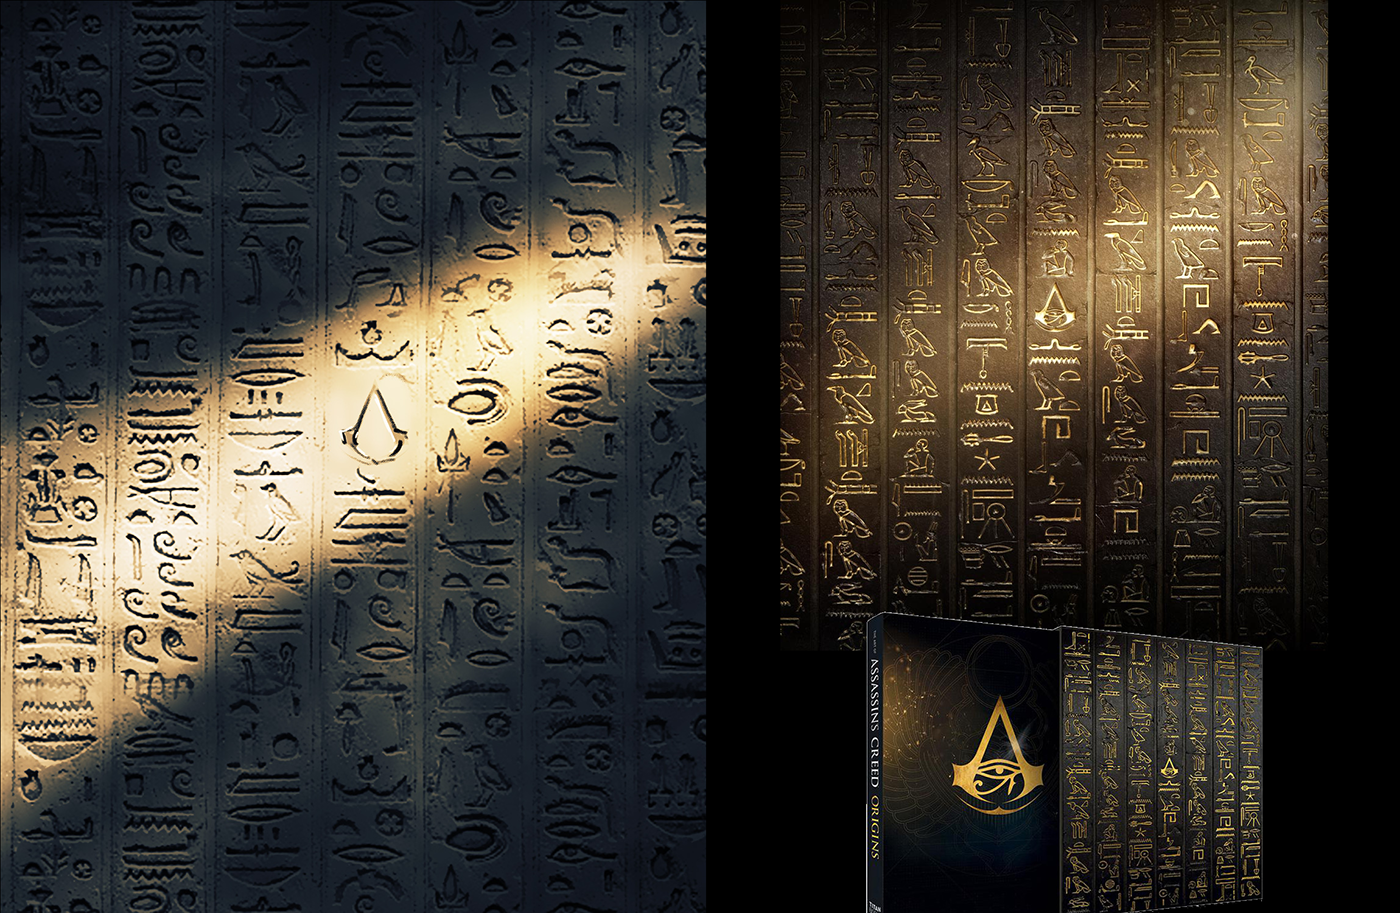 Assassin's Creed origins video game assassin egypt pyramid sphinx hieroglyph ubisoft Two Dots